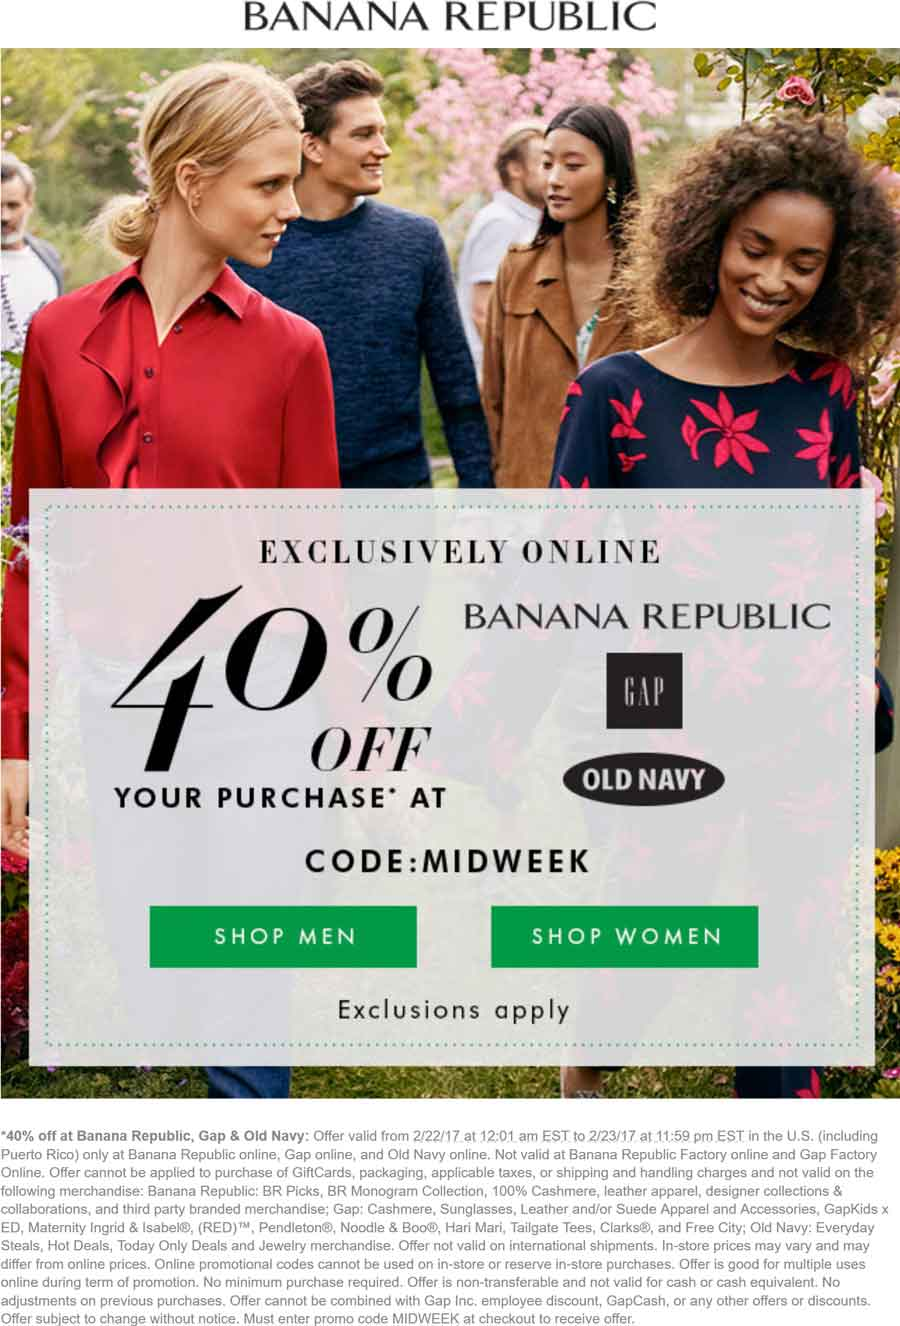 Old Navy Coupon July 2019 40% off online at Gap, Old Navy & Banana Republic via promo code MIDWEEK